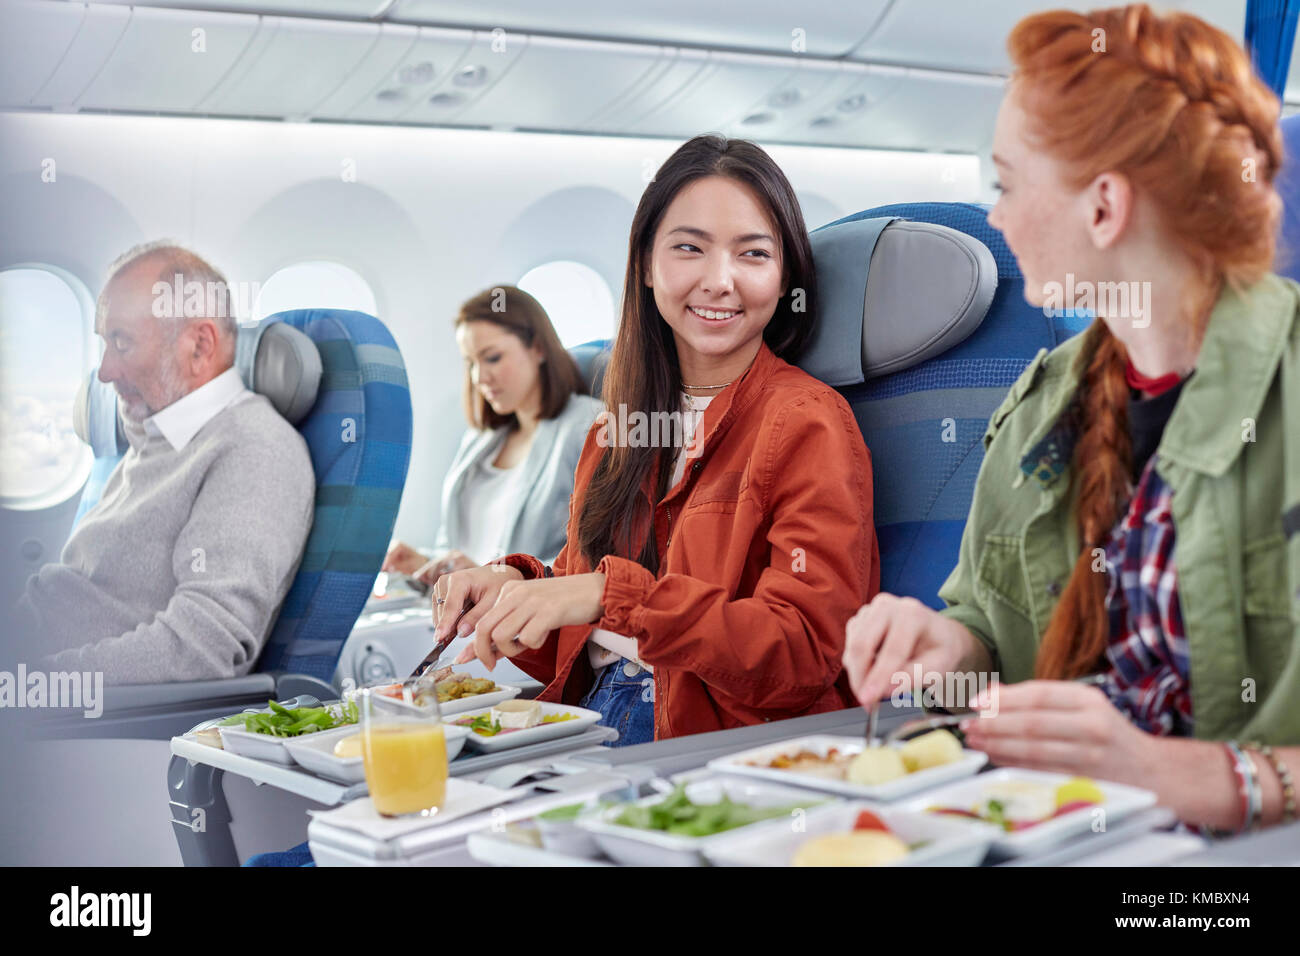 Women friends eating dinner and talking on airplane - Stock Image